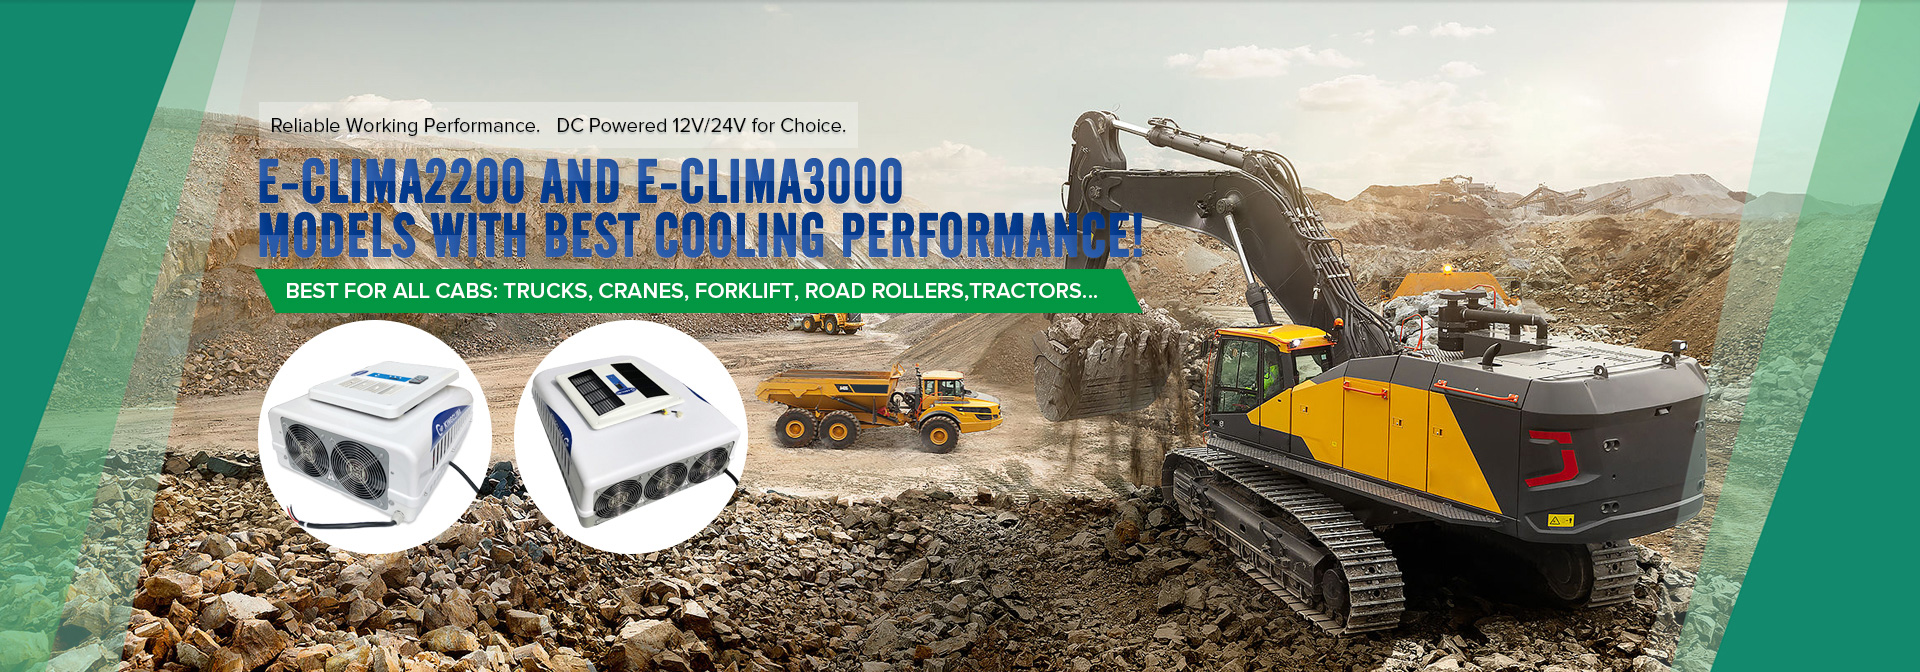 kingclima e-clima series sleeper cab air conditioners